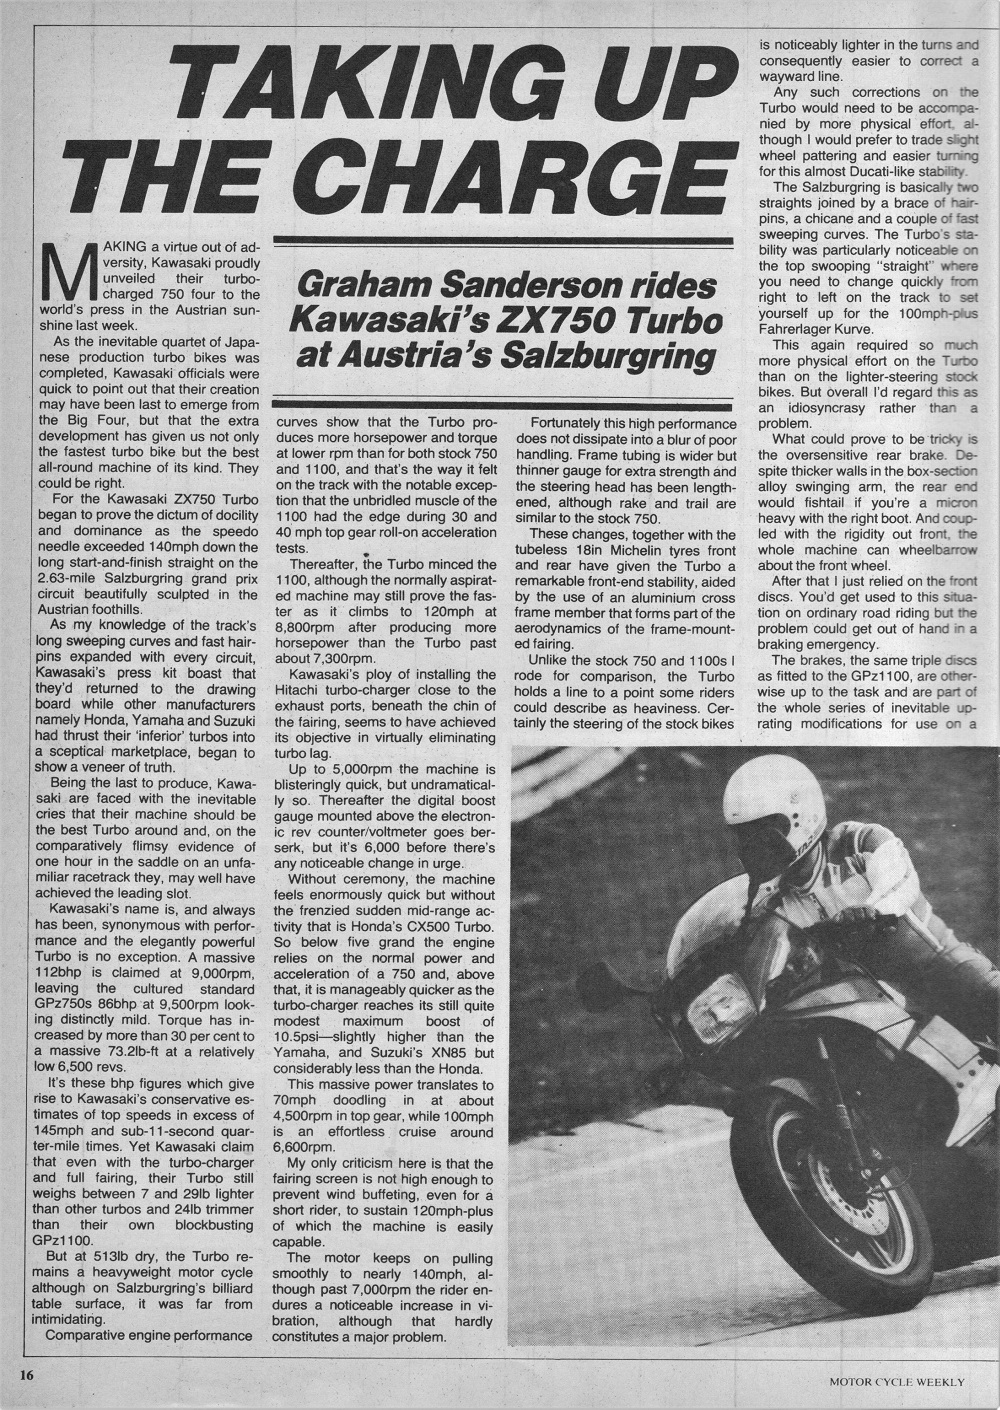 1983 Kawasaki Gpz750 Turbo road test.2.jpg